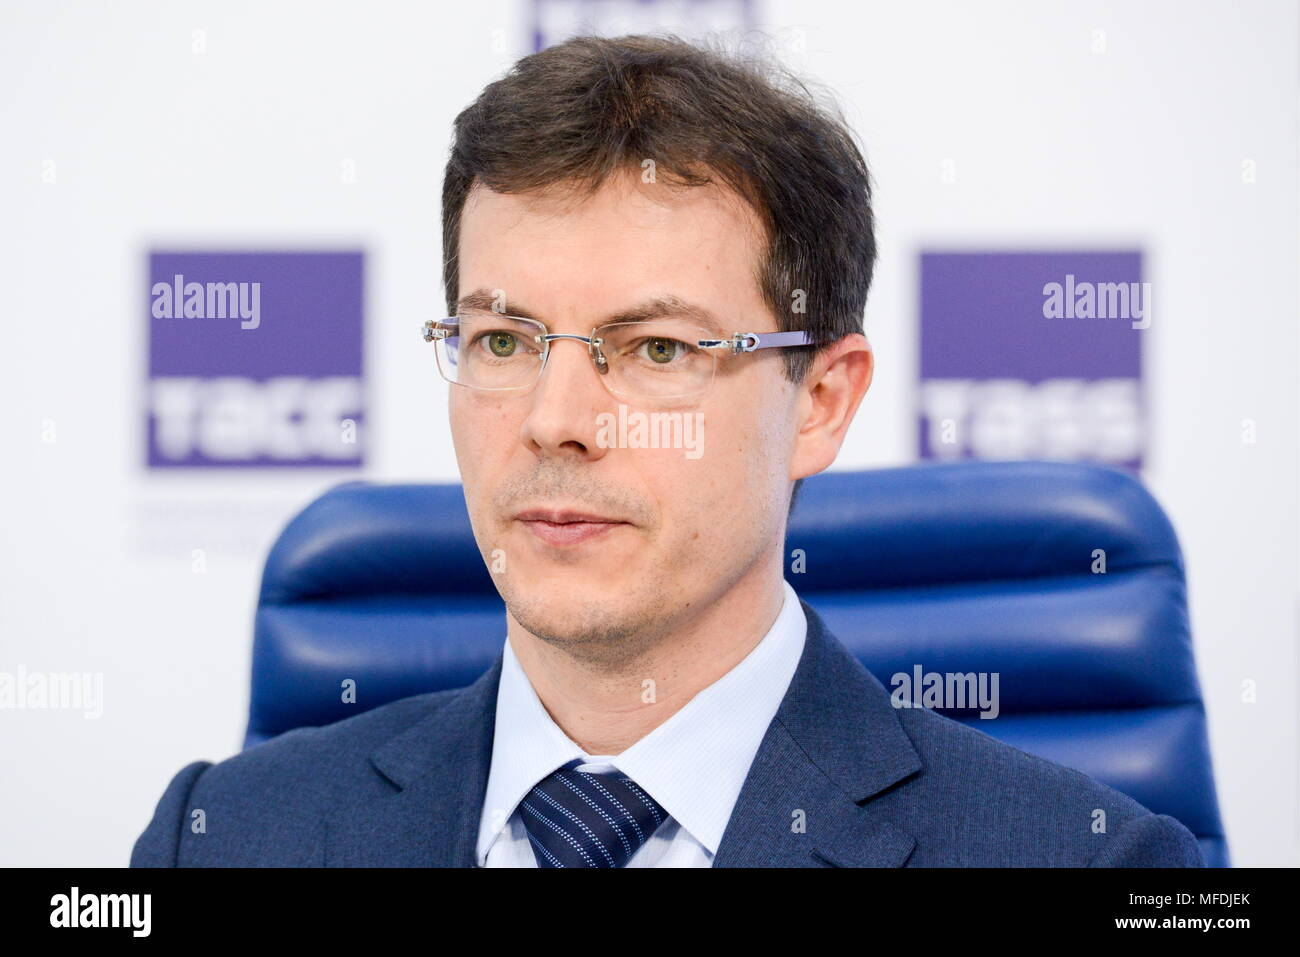 MOSCOW, RUSSIA - APRIL 25, 2018: Maxim Protasov, head of the autonomous non-commercial organization 'Russian Quality System' (Roskachestvo), at a press conference at the Moscow office of the TASS news agency about the Ty Predprinimatel [You Are an Entrepreneur] Programme by Russia's Federal Agency for Youth Affairs; the aim of the programme is to offer support to young people who start their businesses. Nikolai Galkin/TASS - Stock Image